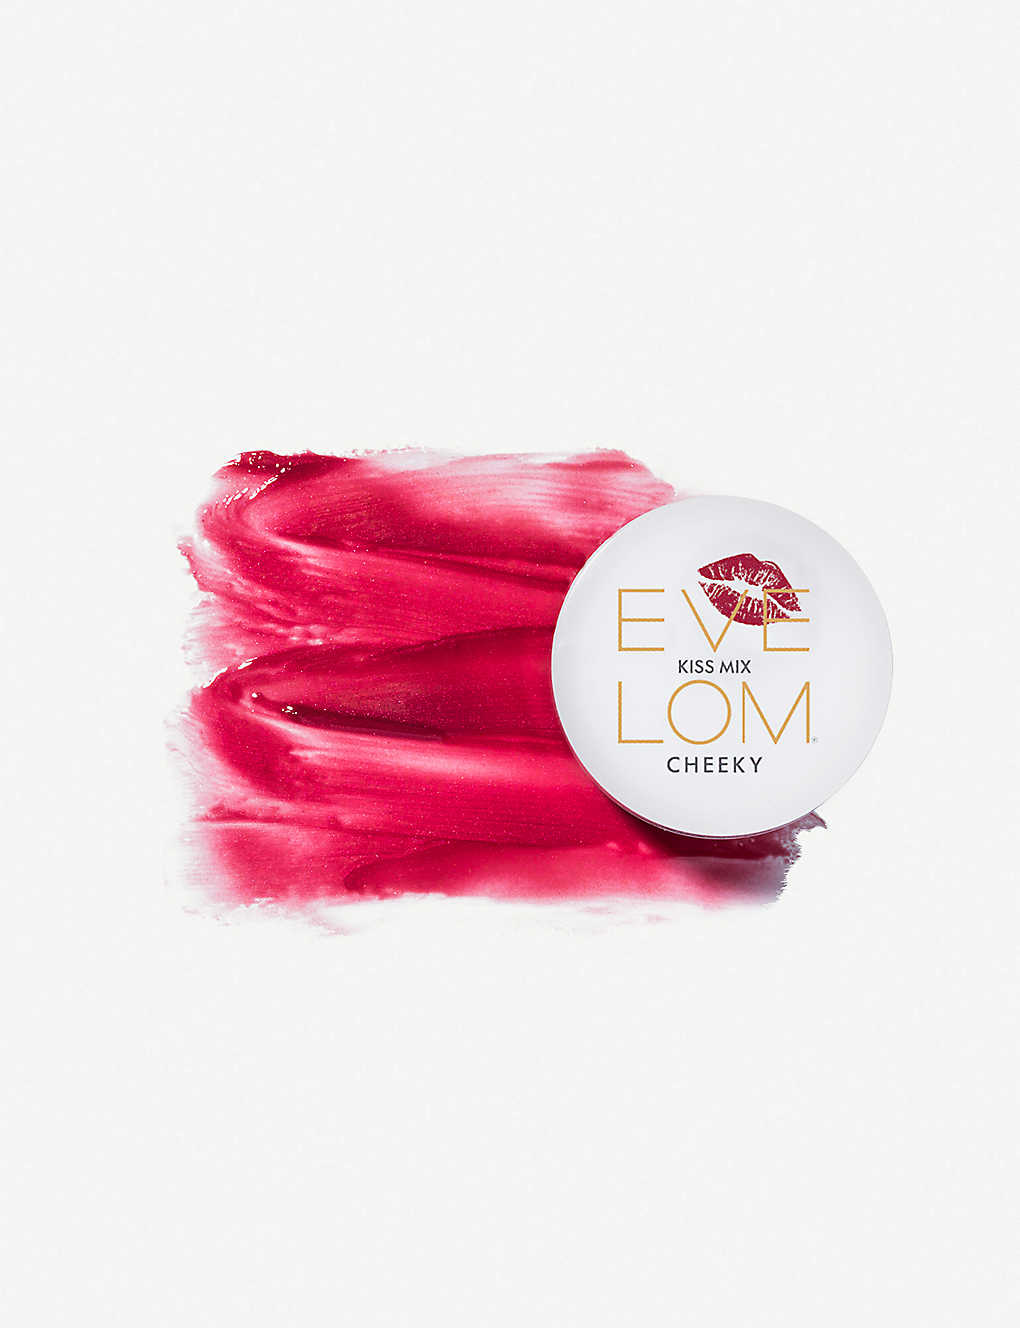 EVE LOM: Kiss Mix Cheeky 7ml